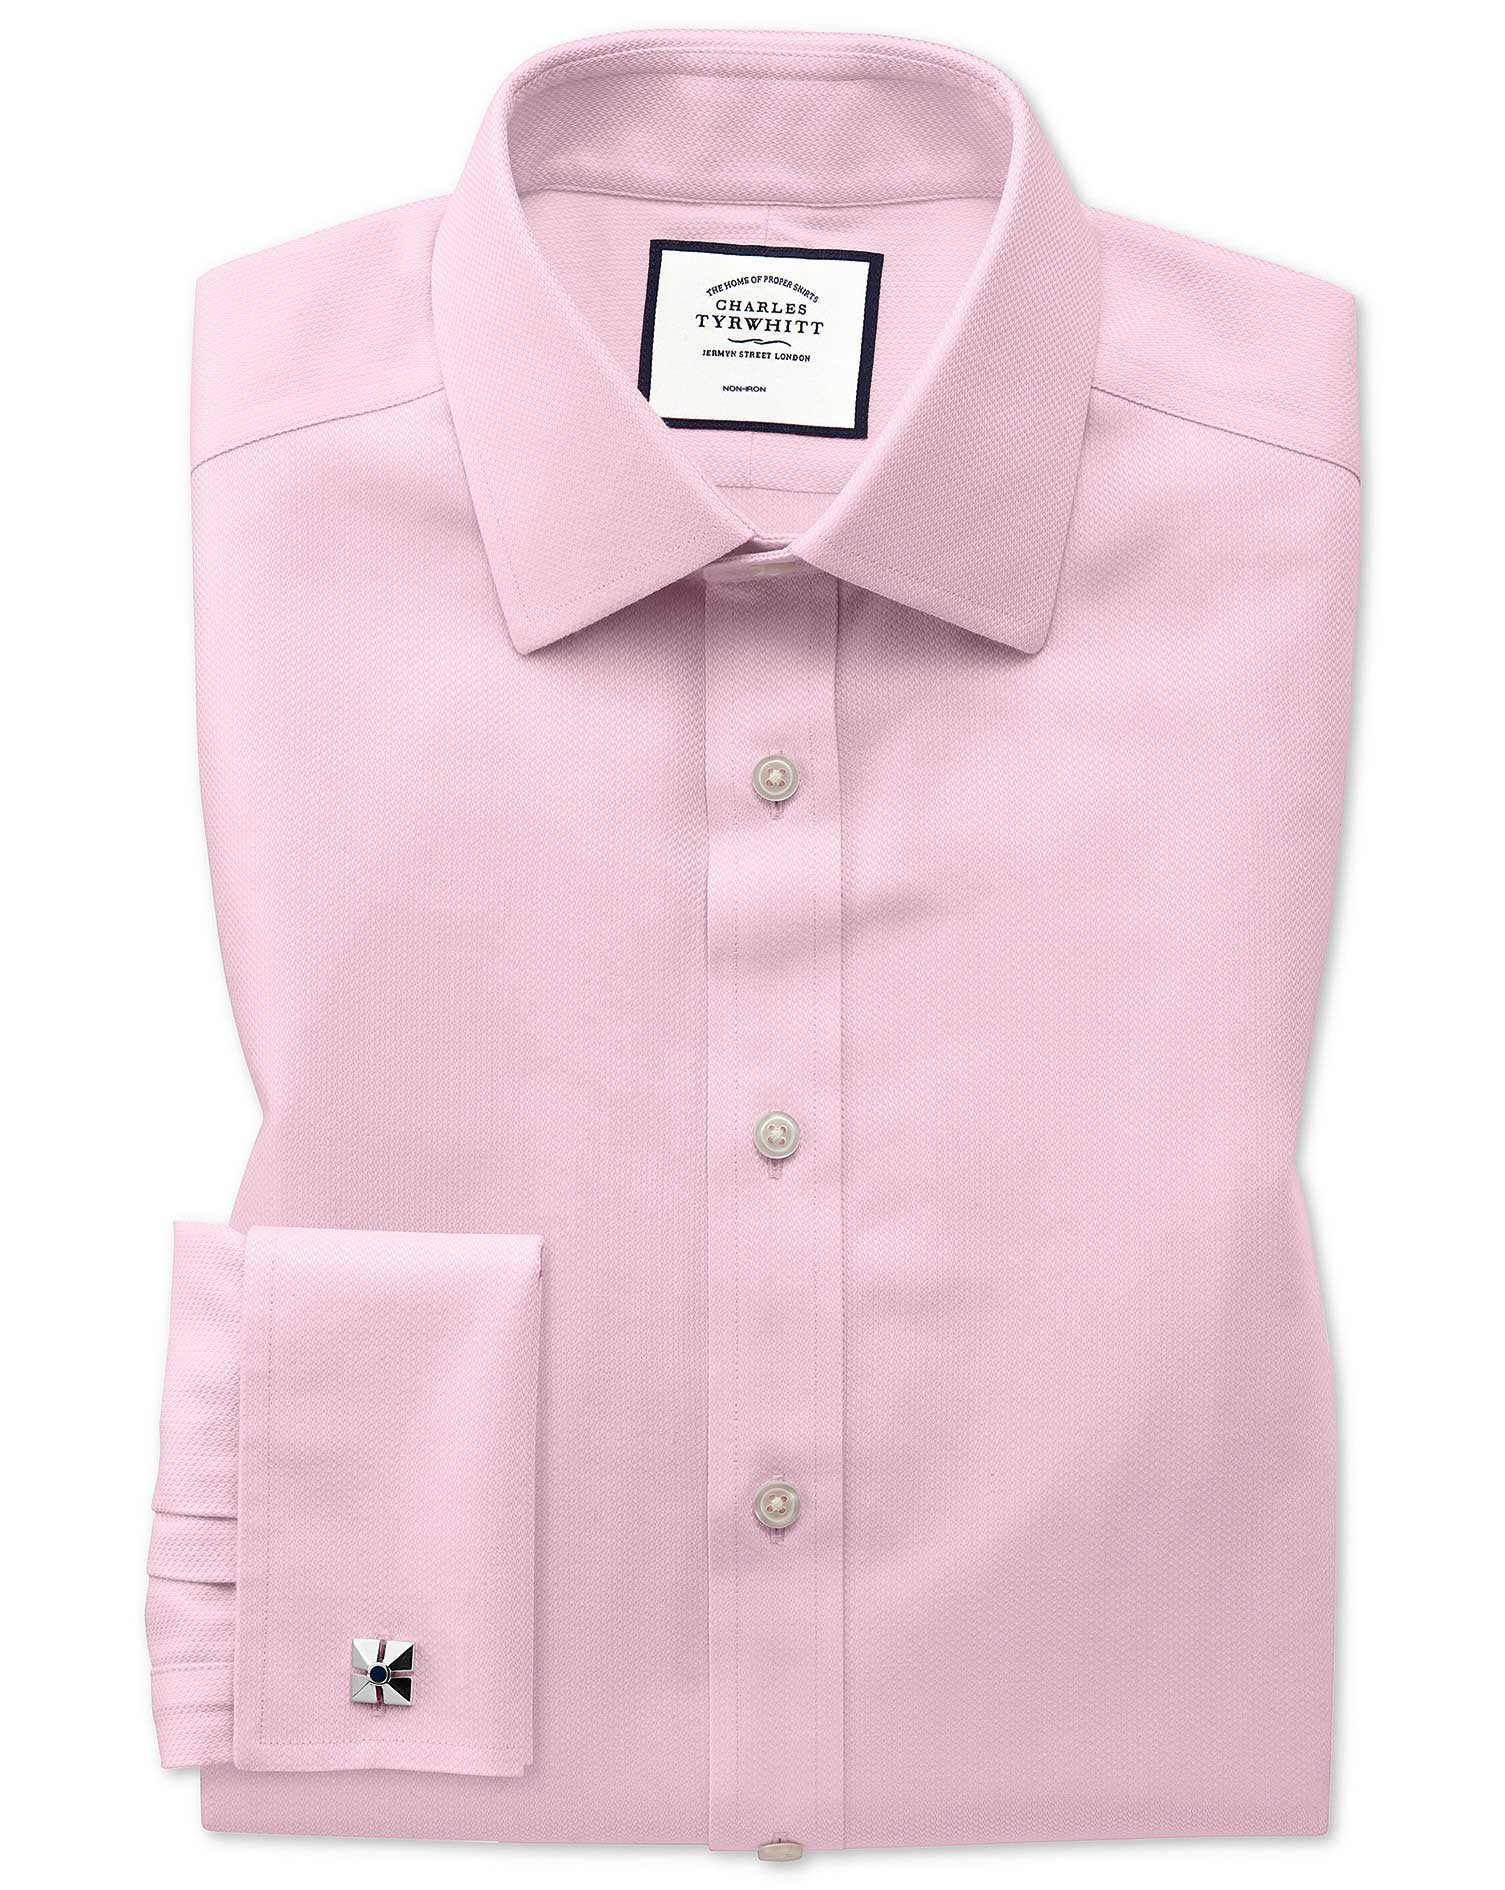 Extra Slim Fit Non-Iron Pink Arrow Weave Cotton Formal Shirt Single Cuff Size 16.5/35 by Charles Tyr